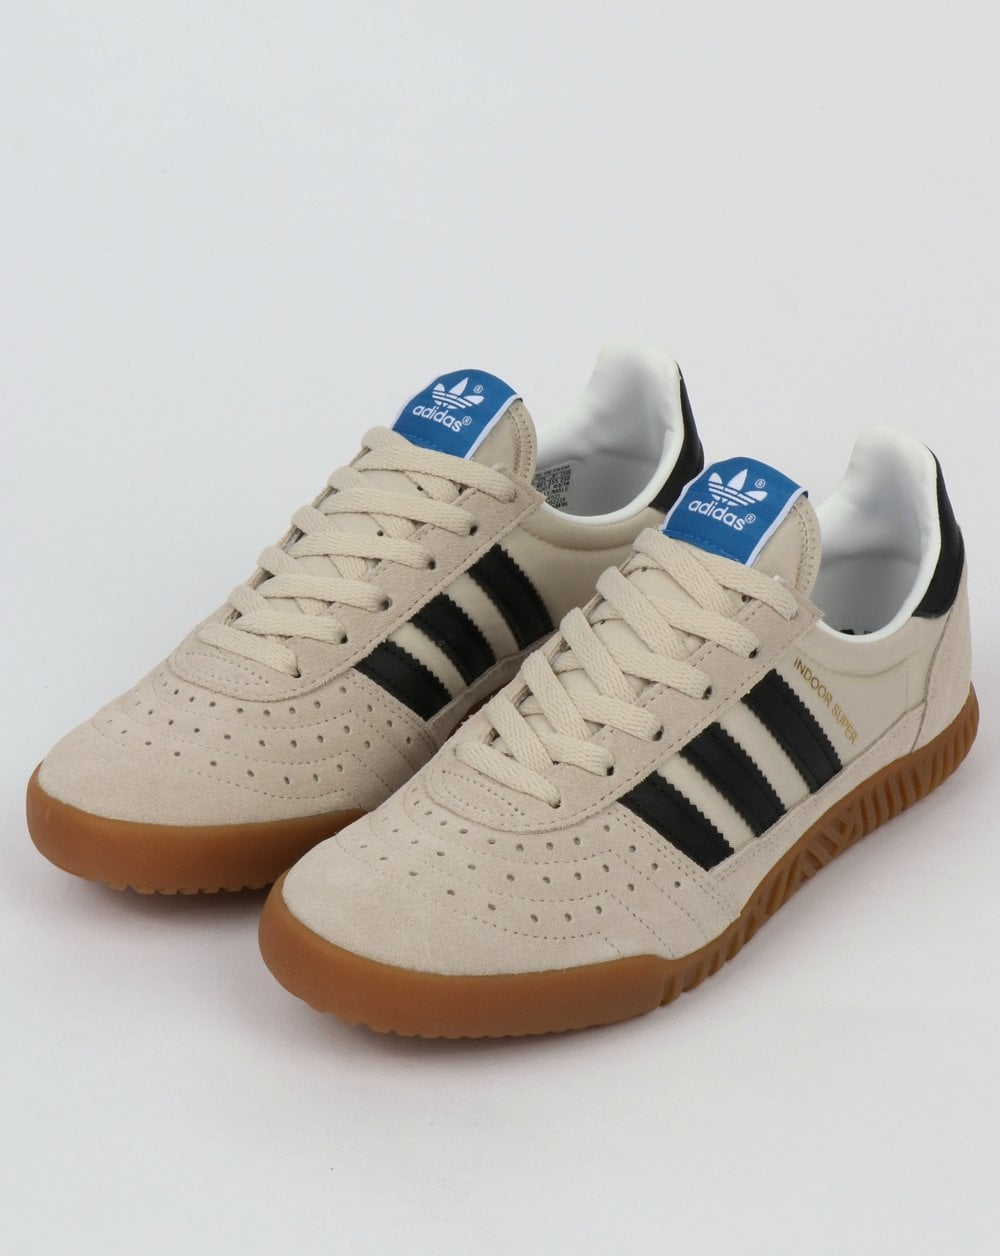 1777c64a6784b0 Adidas Indoor Super Trainers Brown,Black,shoes,squash,suede,mens